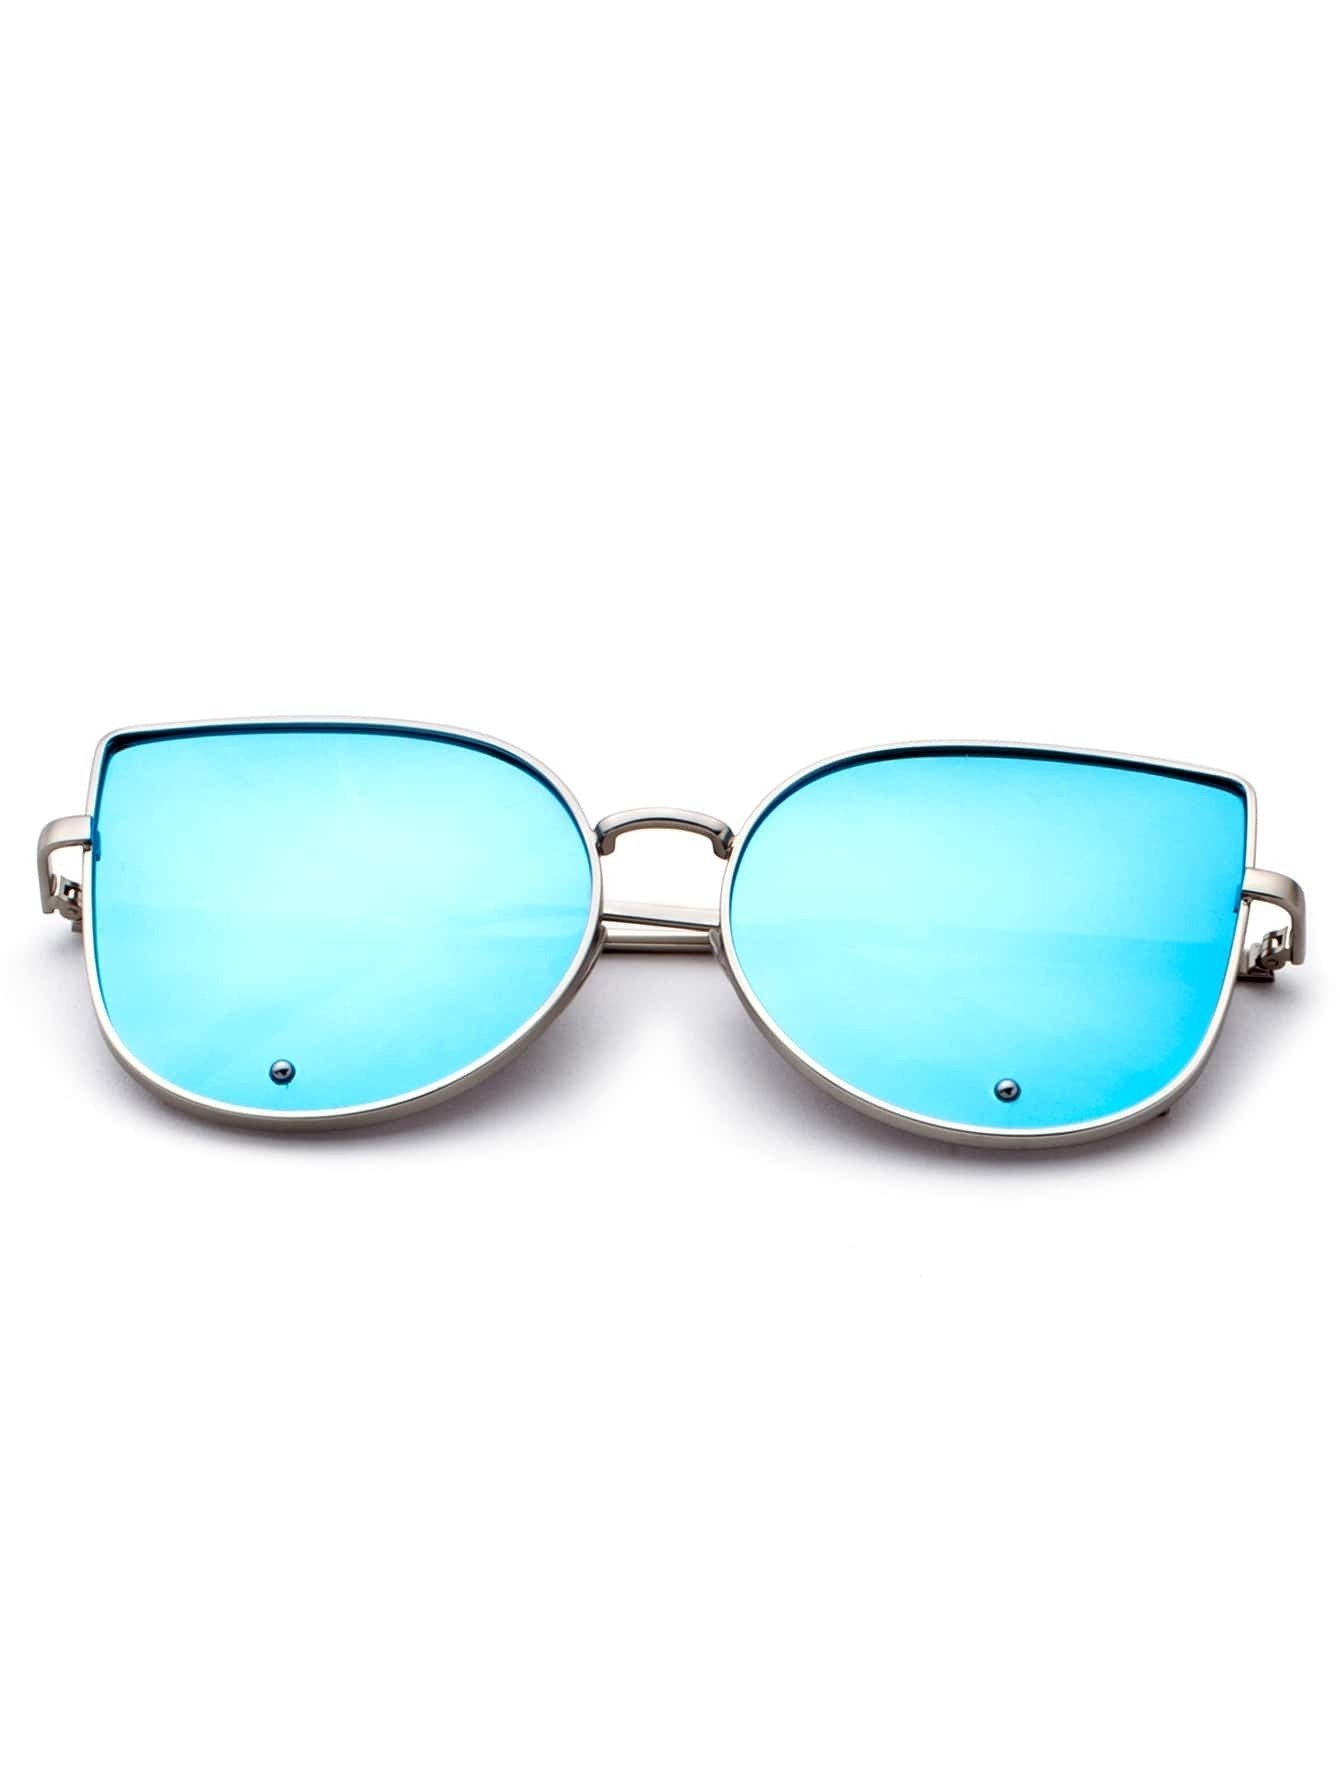 Gold Frame Blue Cat Eye Stylish Sunglasses